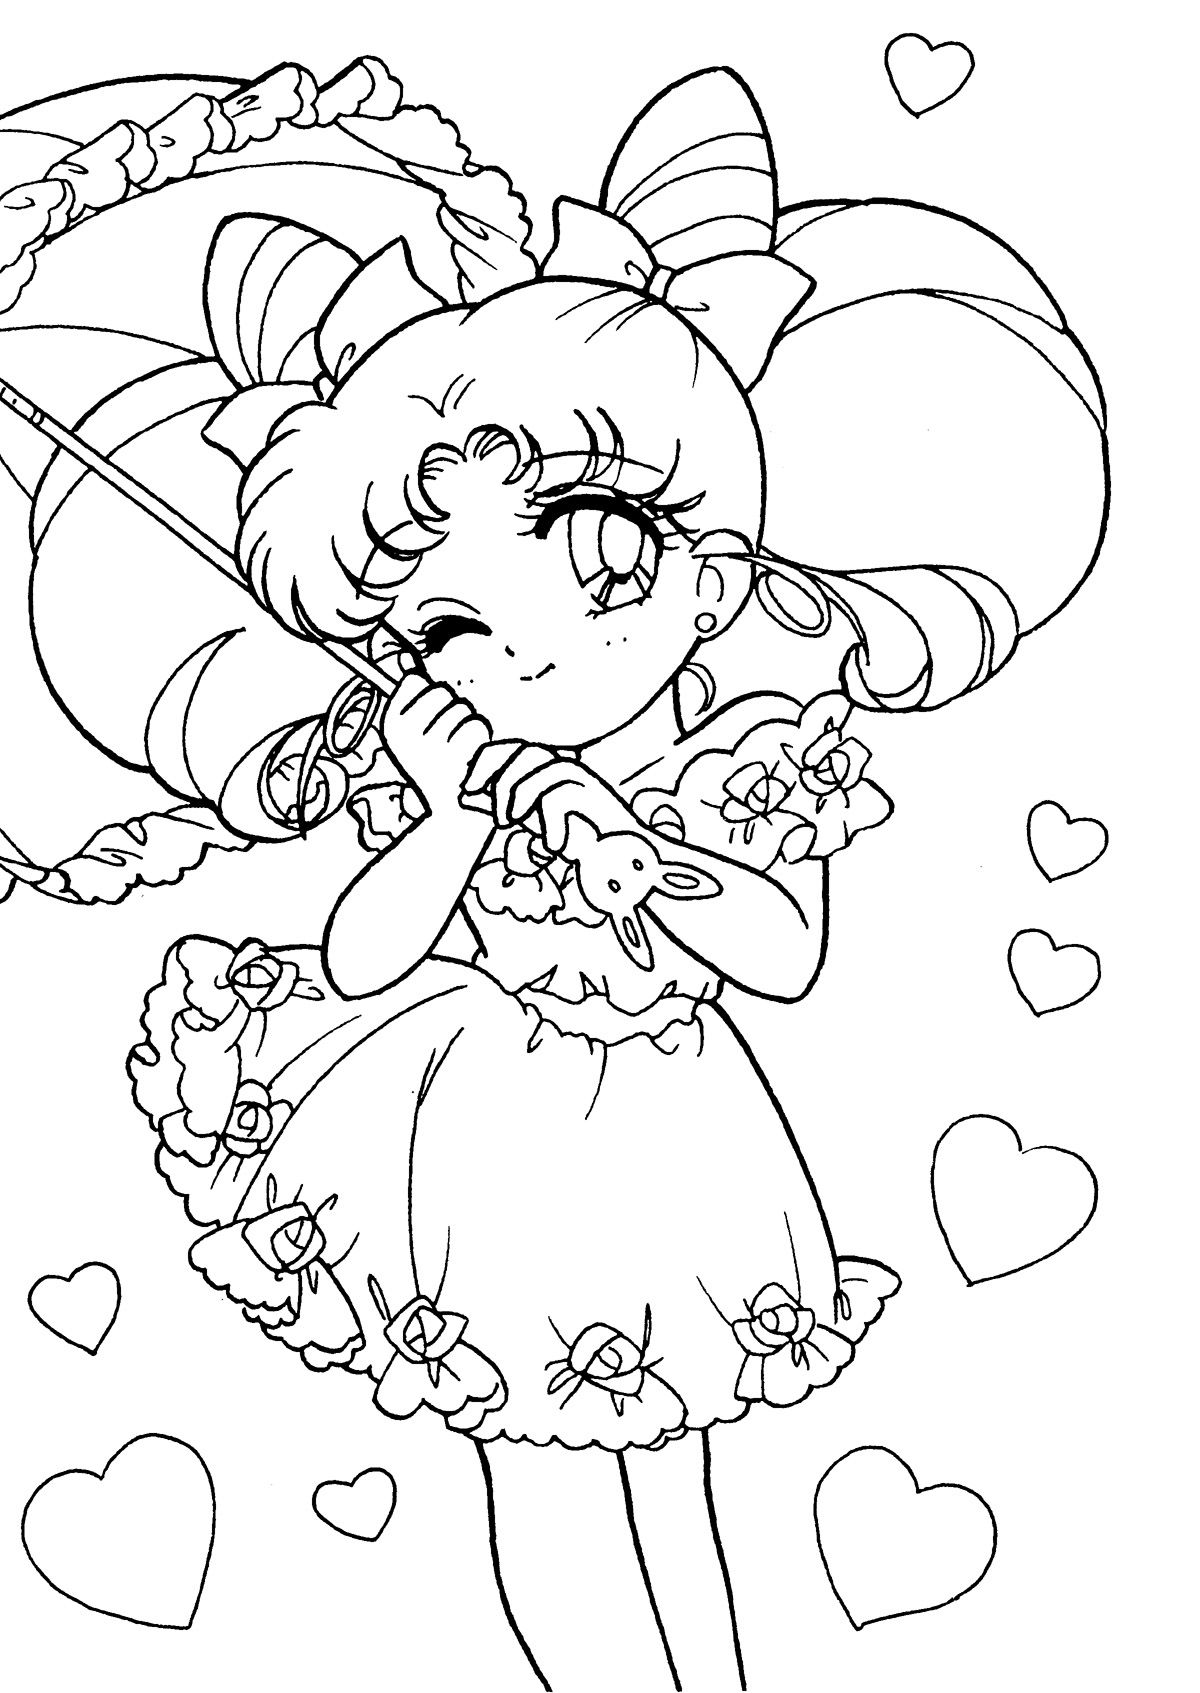 Tsuki matsuri the sailormoon coloring book archive | Sailor Moon ...